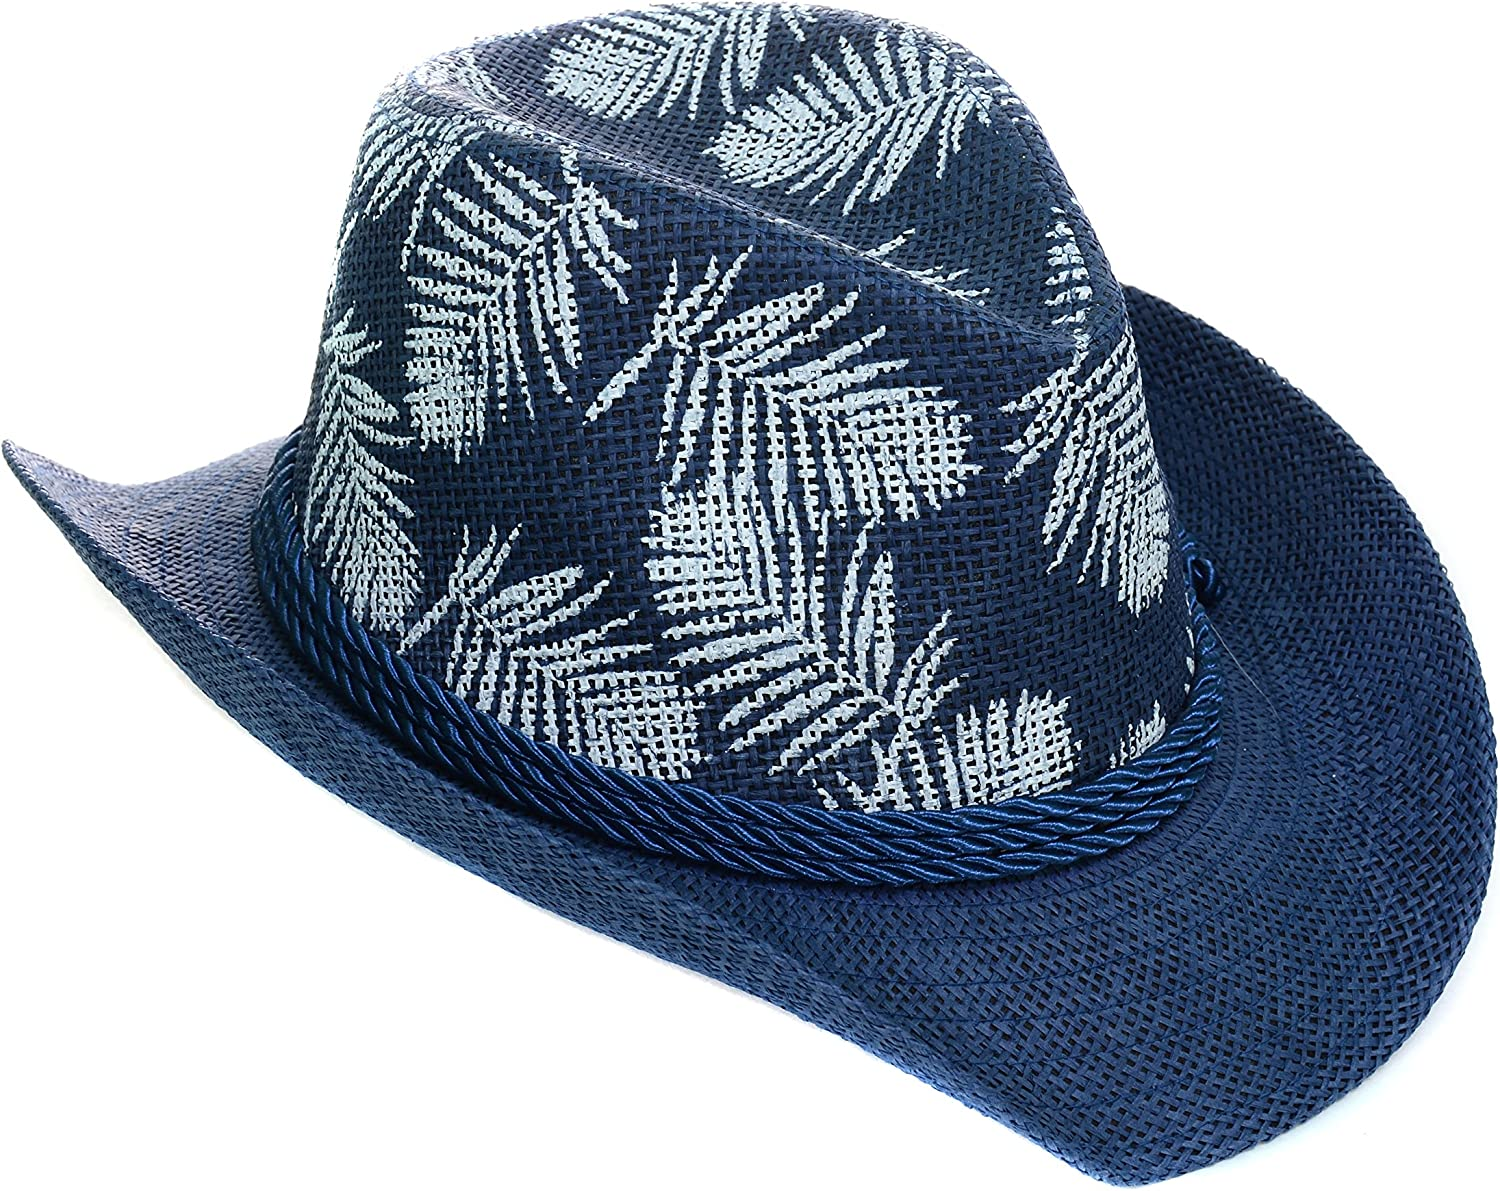 Fourever Funky Palm Trees Stars Navy Beige Drifter Cowboy Hat Unisex